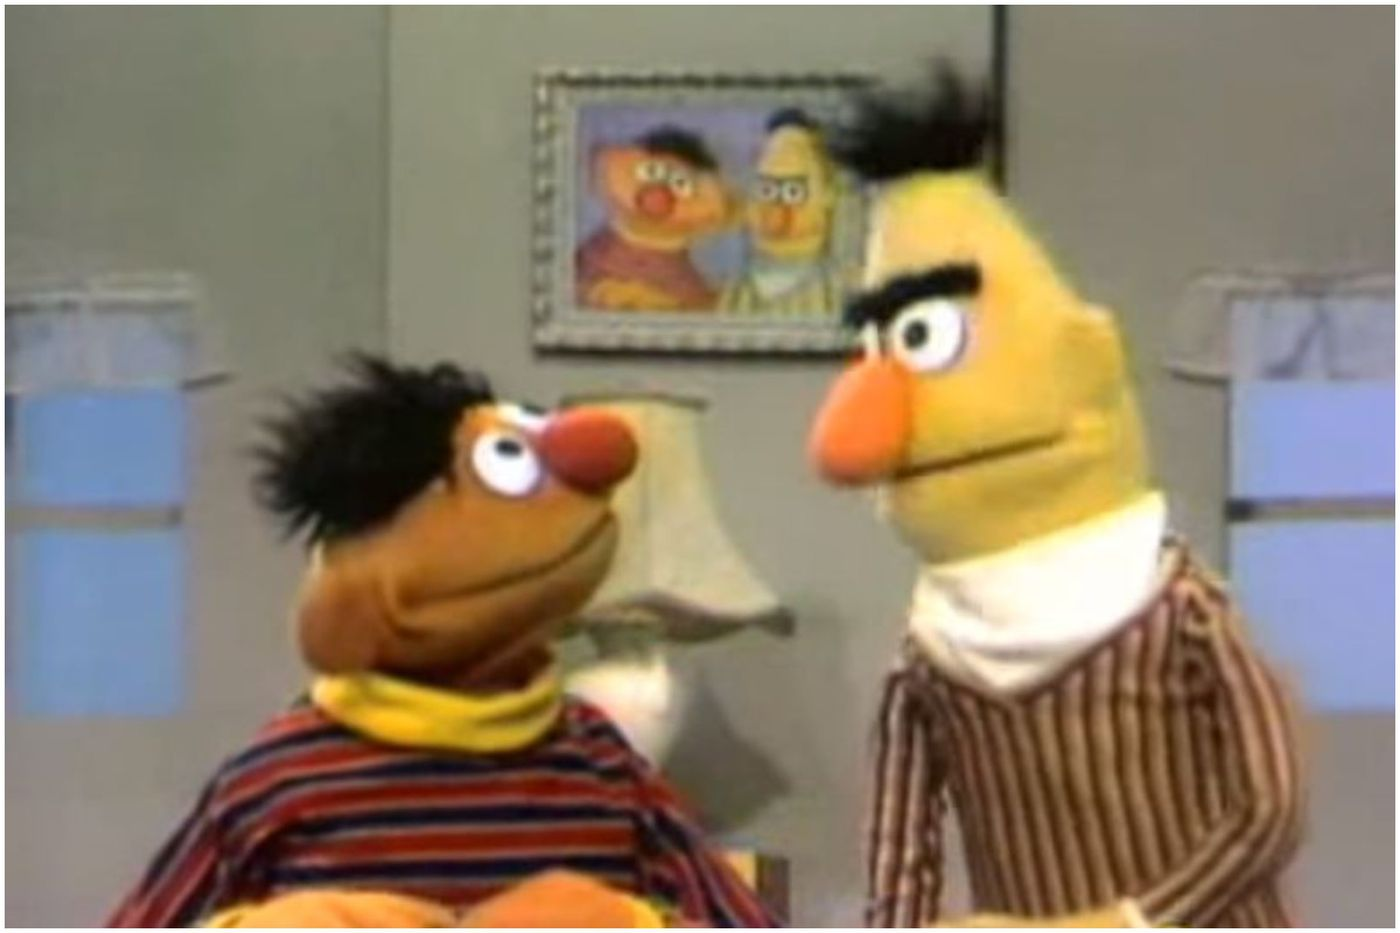 'Sesame Street': Bert and Ernie aren't gay. Former writer: They are.